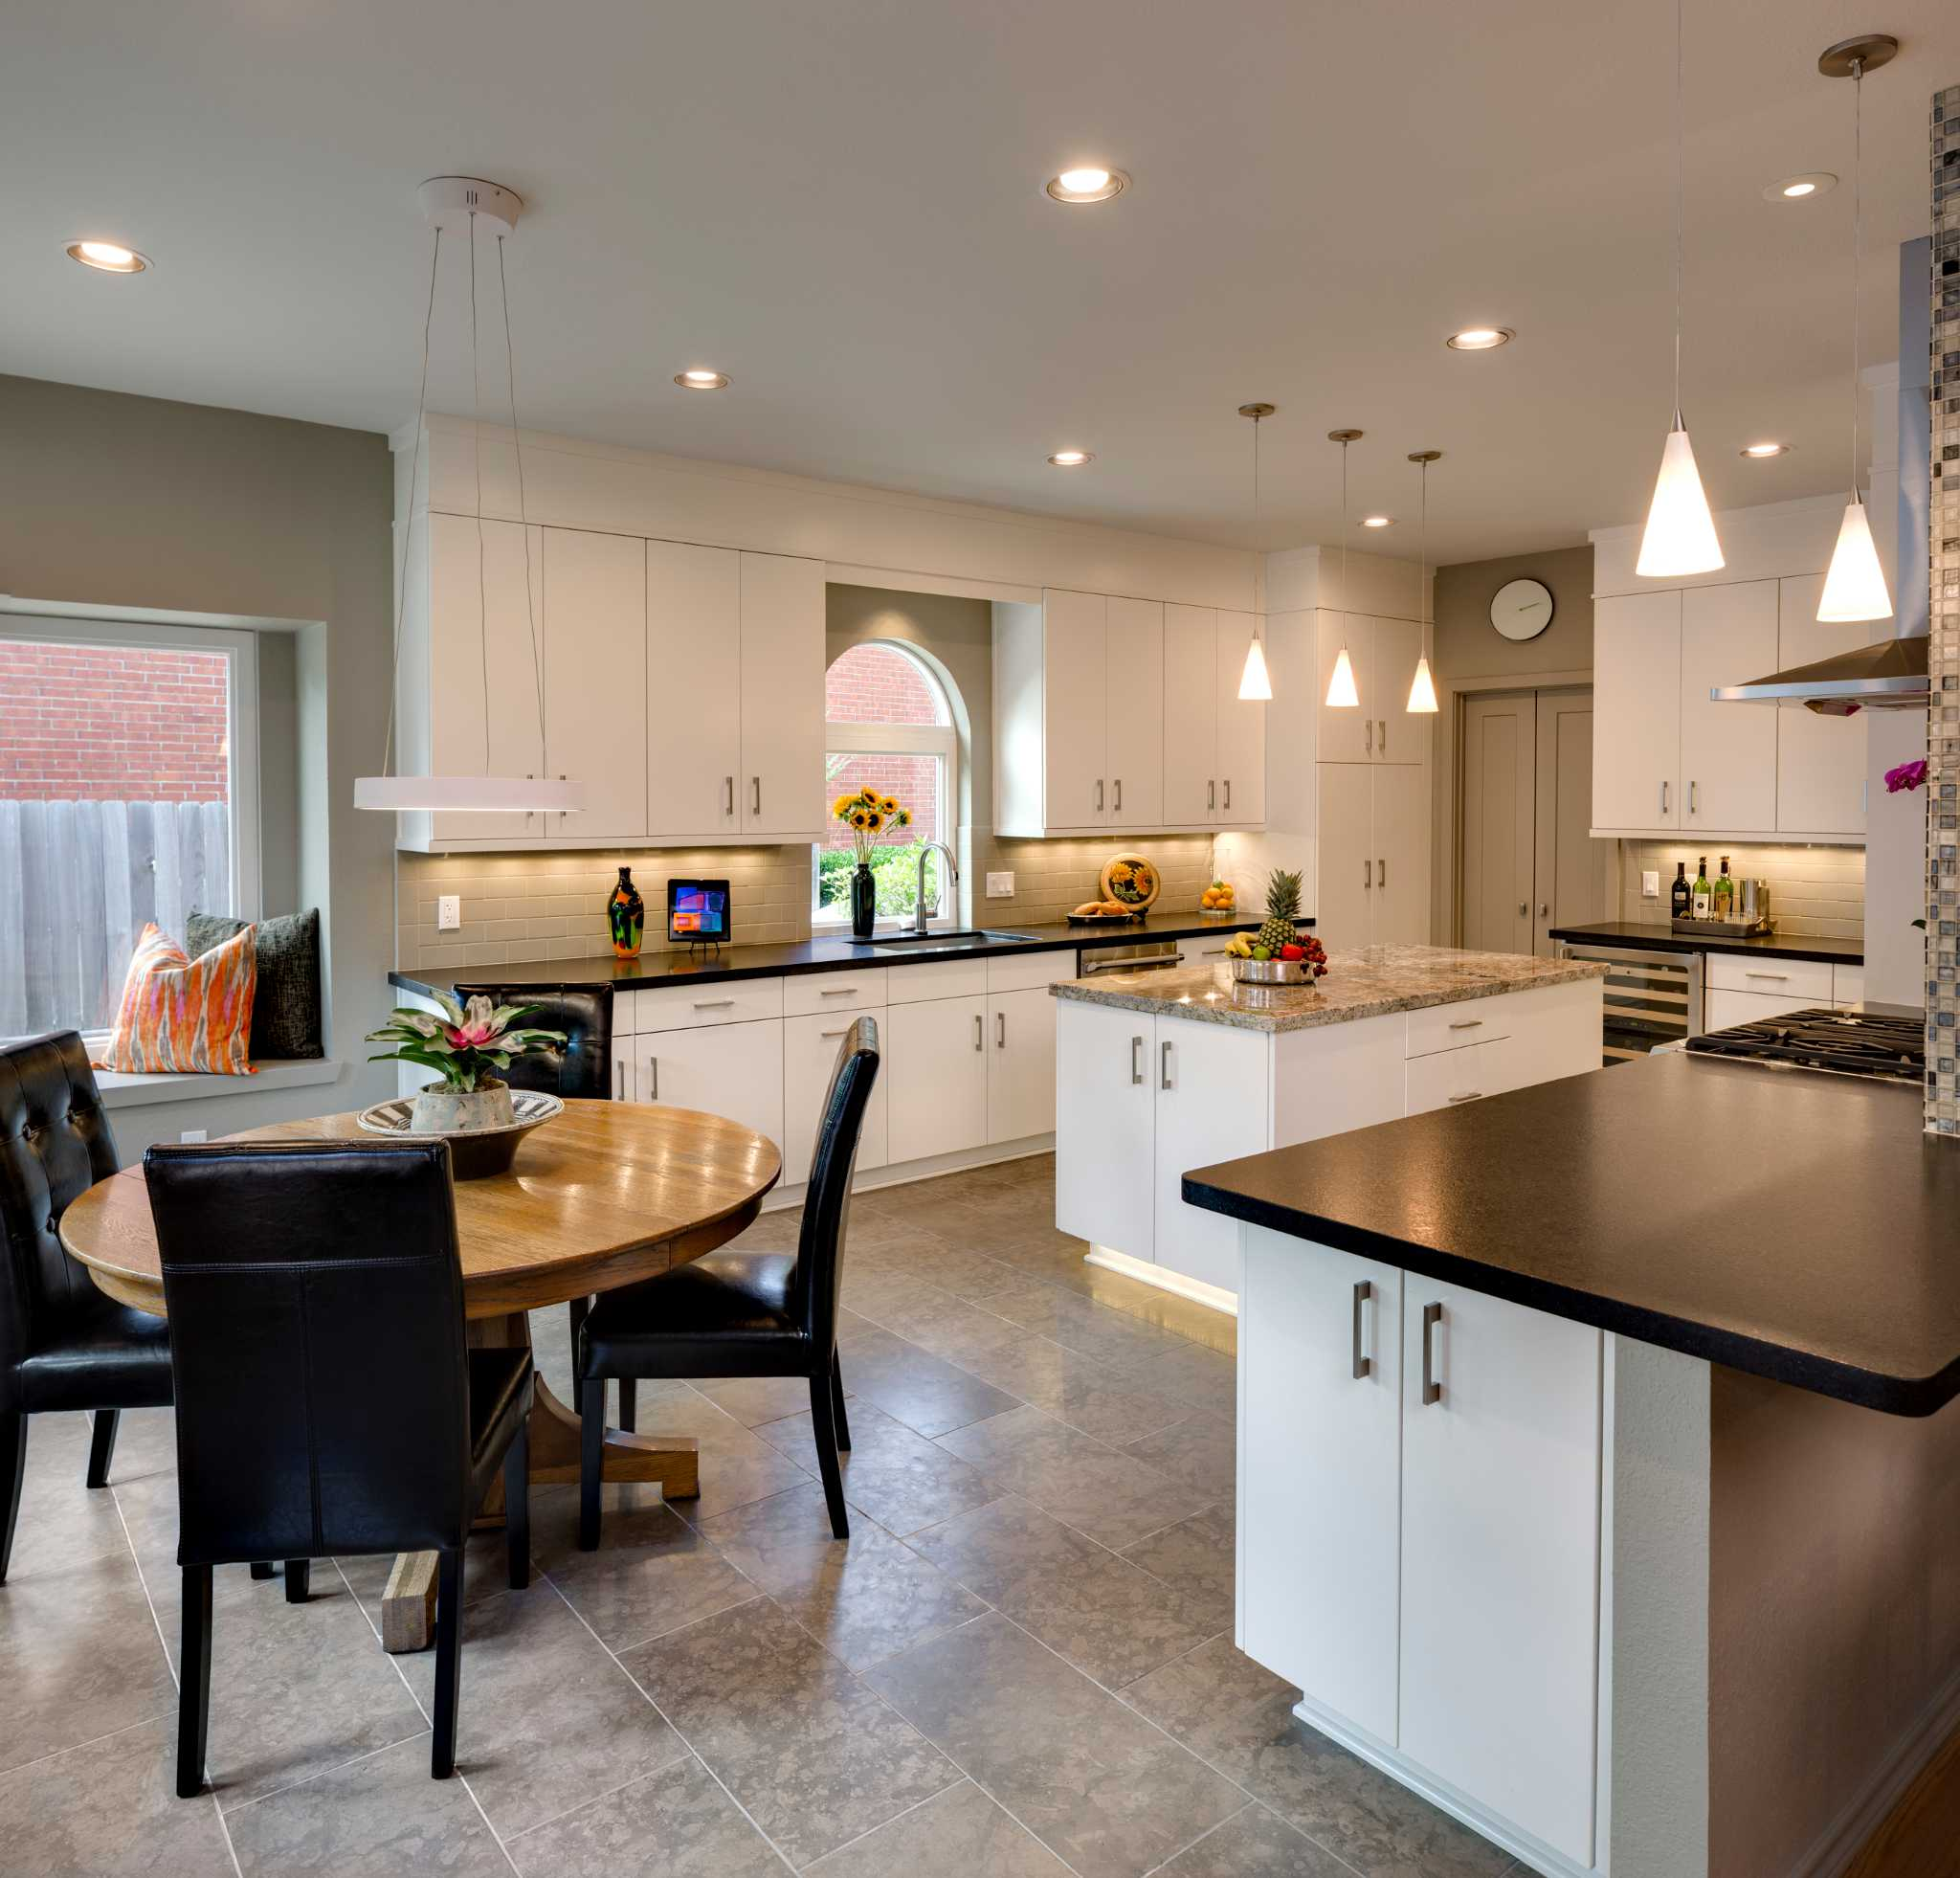 Time for an upgrade: Kitchen, bath are top remodeling projects ...